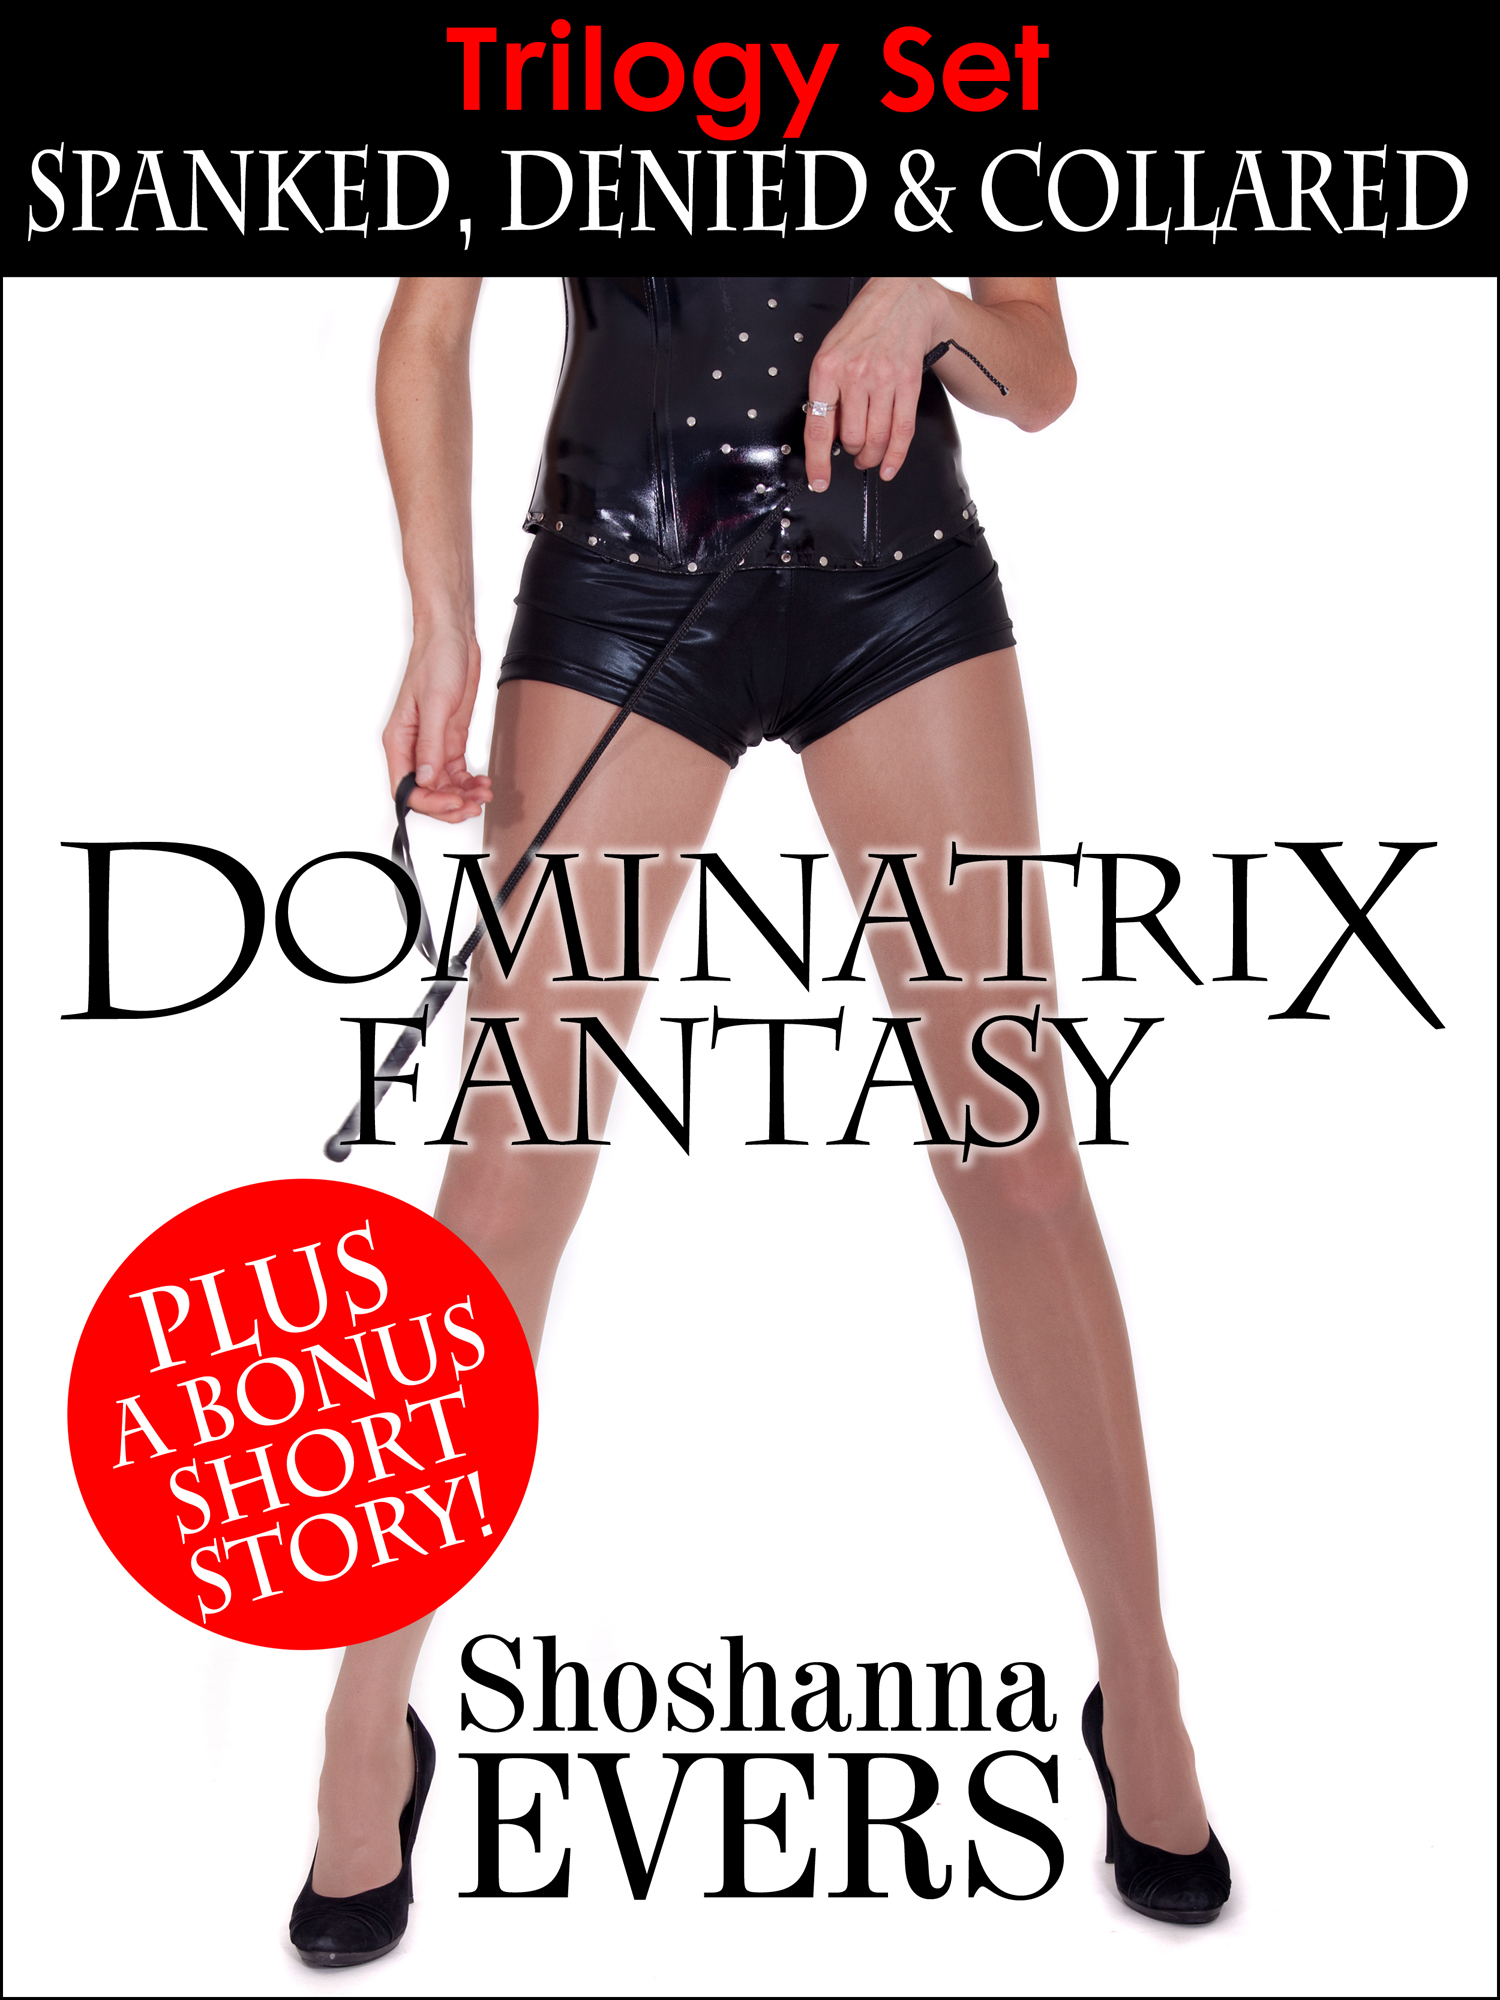 The Dominatrix Fantasy Trilogy book cover